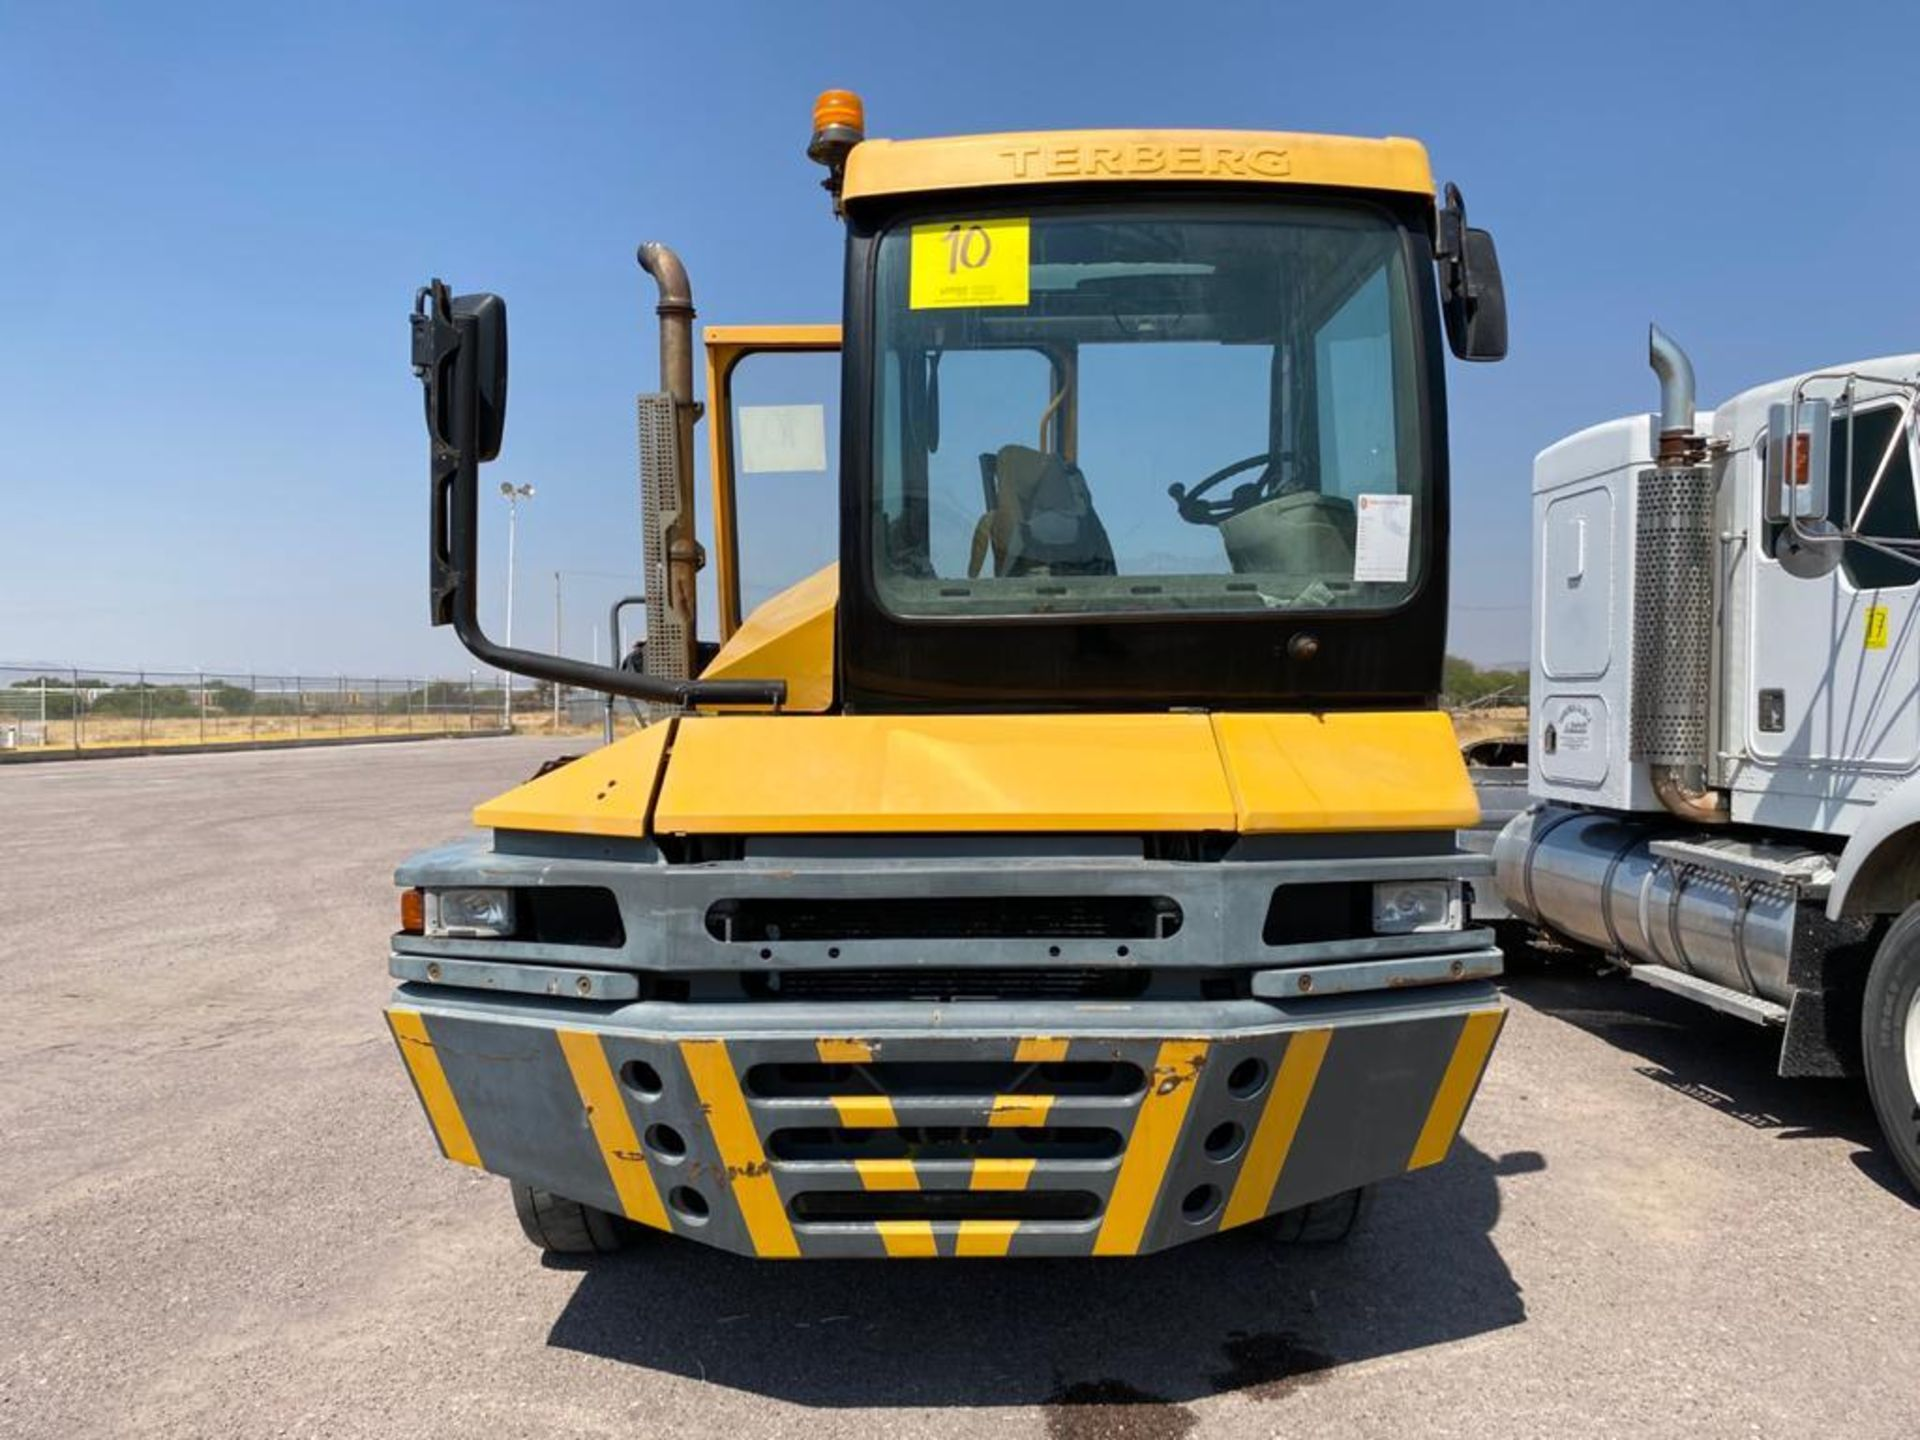 Terberg Capacity 2002 Terminal Tractor, automatic transmissio - Image 7 of 28